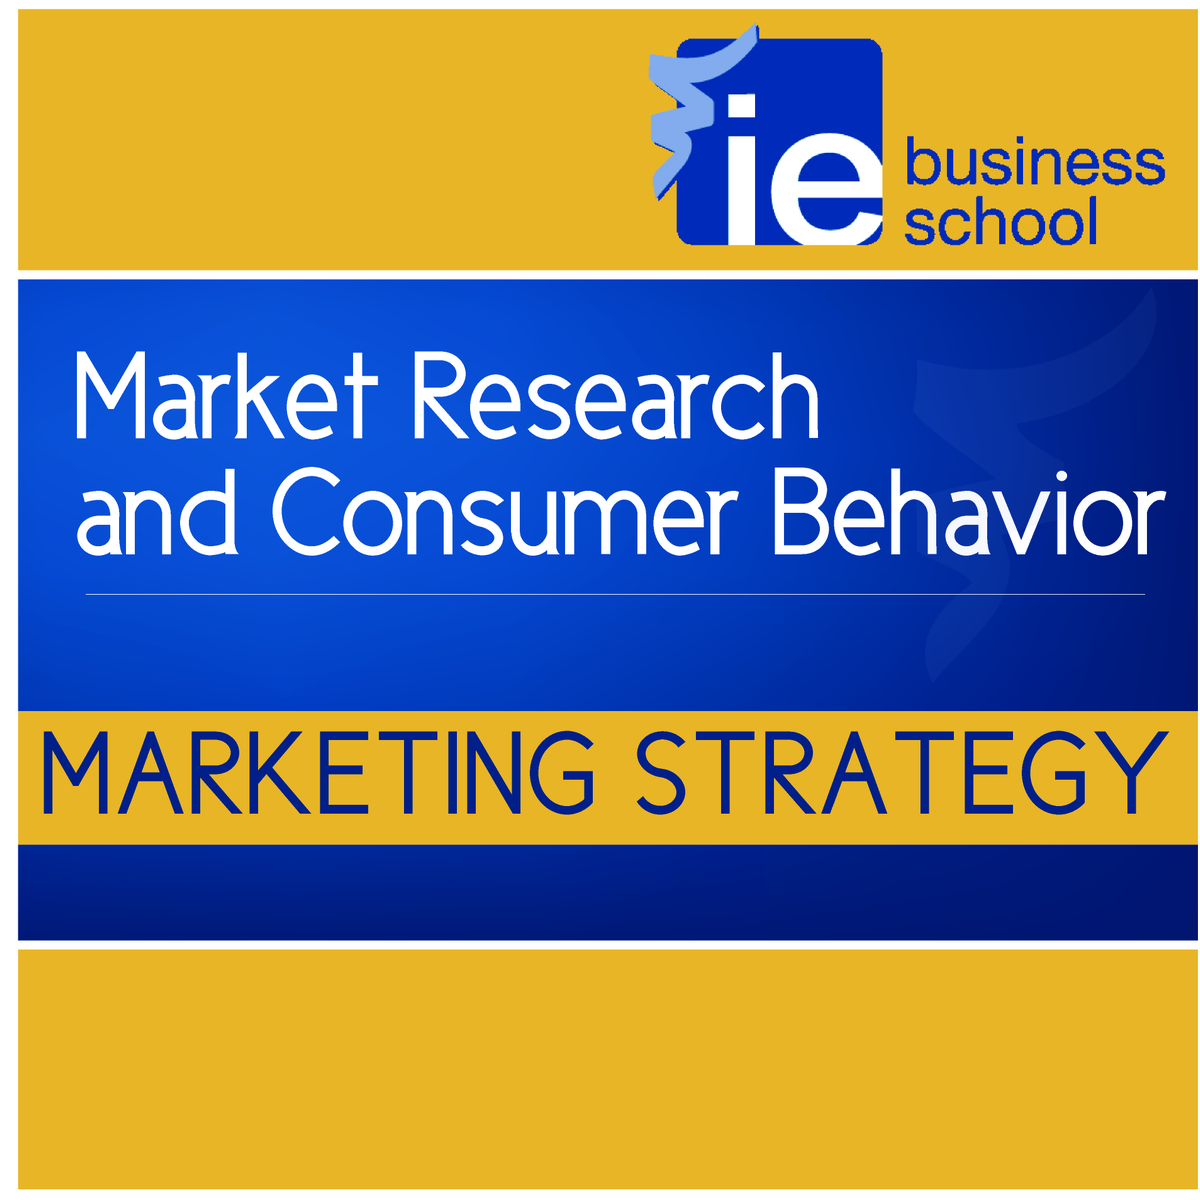 marketing research and consumer behaviour As experts in the field of market research and data consumer behavior  videography in marketing and consumer research qualitative market research, 8 (2.